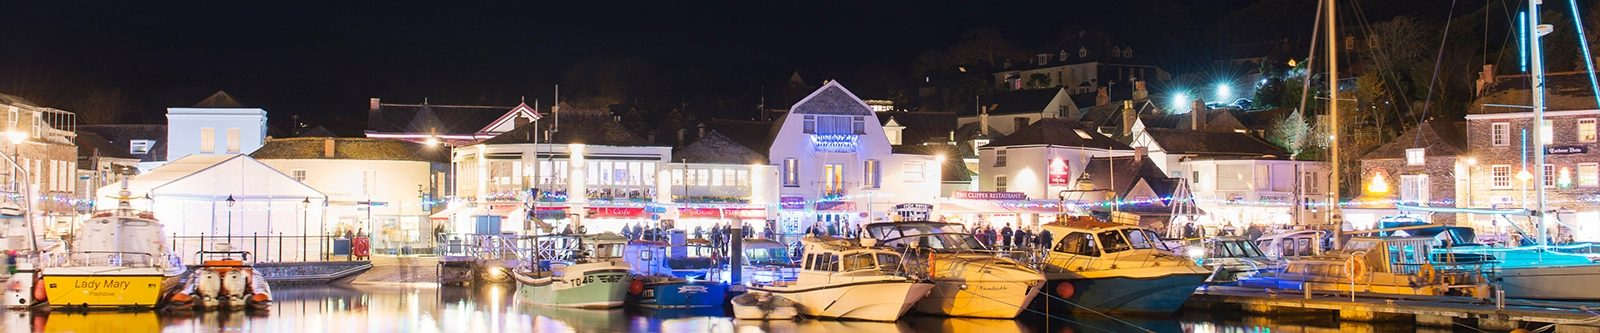 Padstow at Christmas